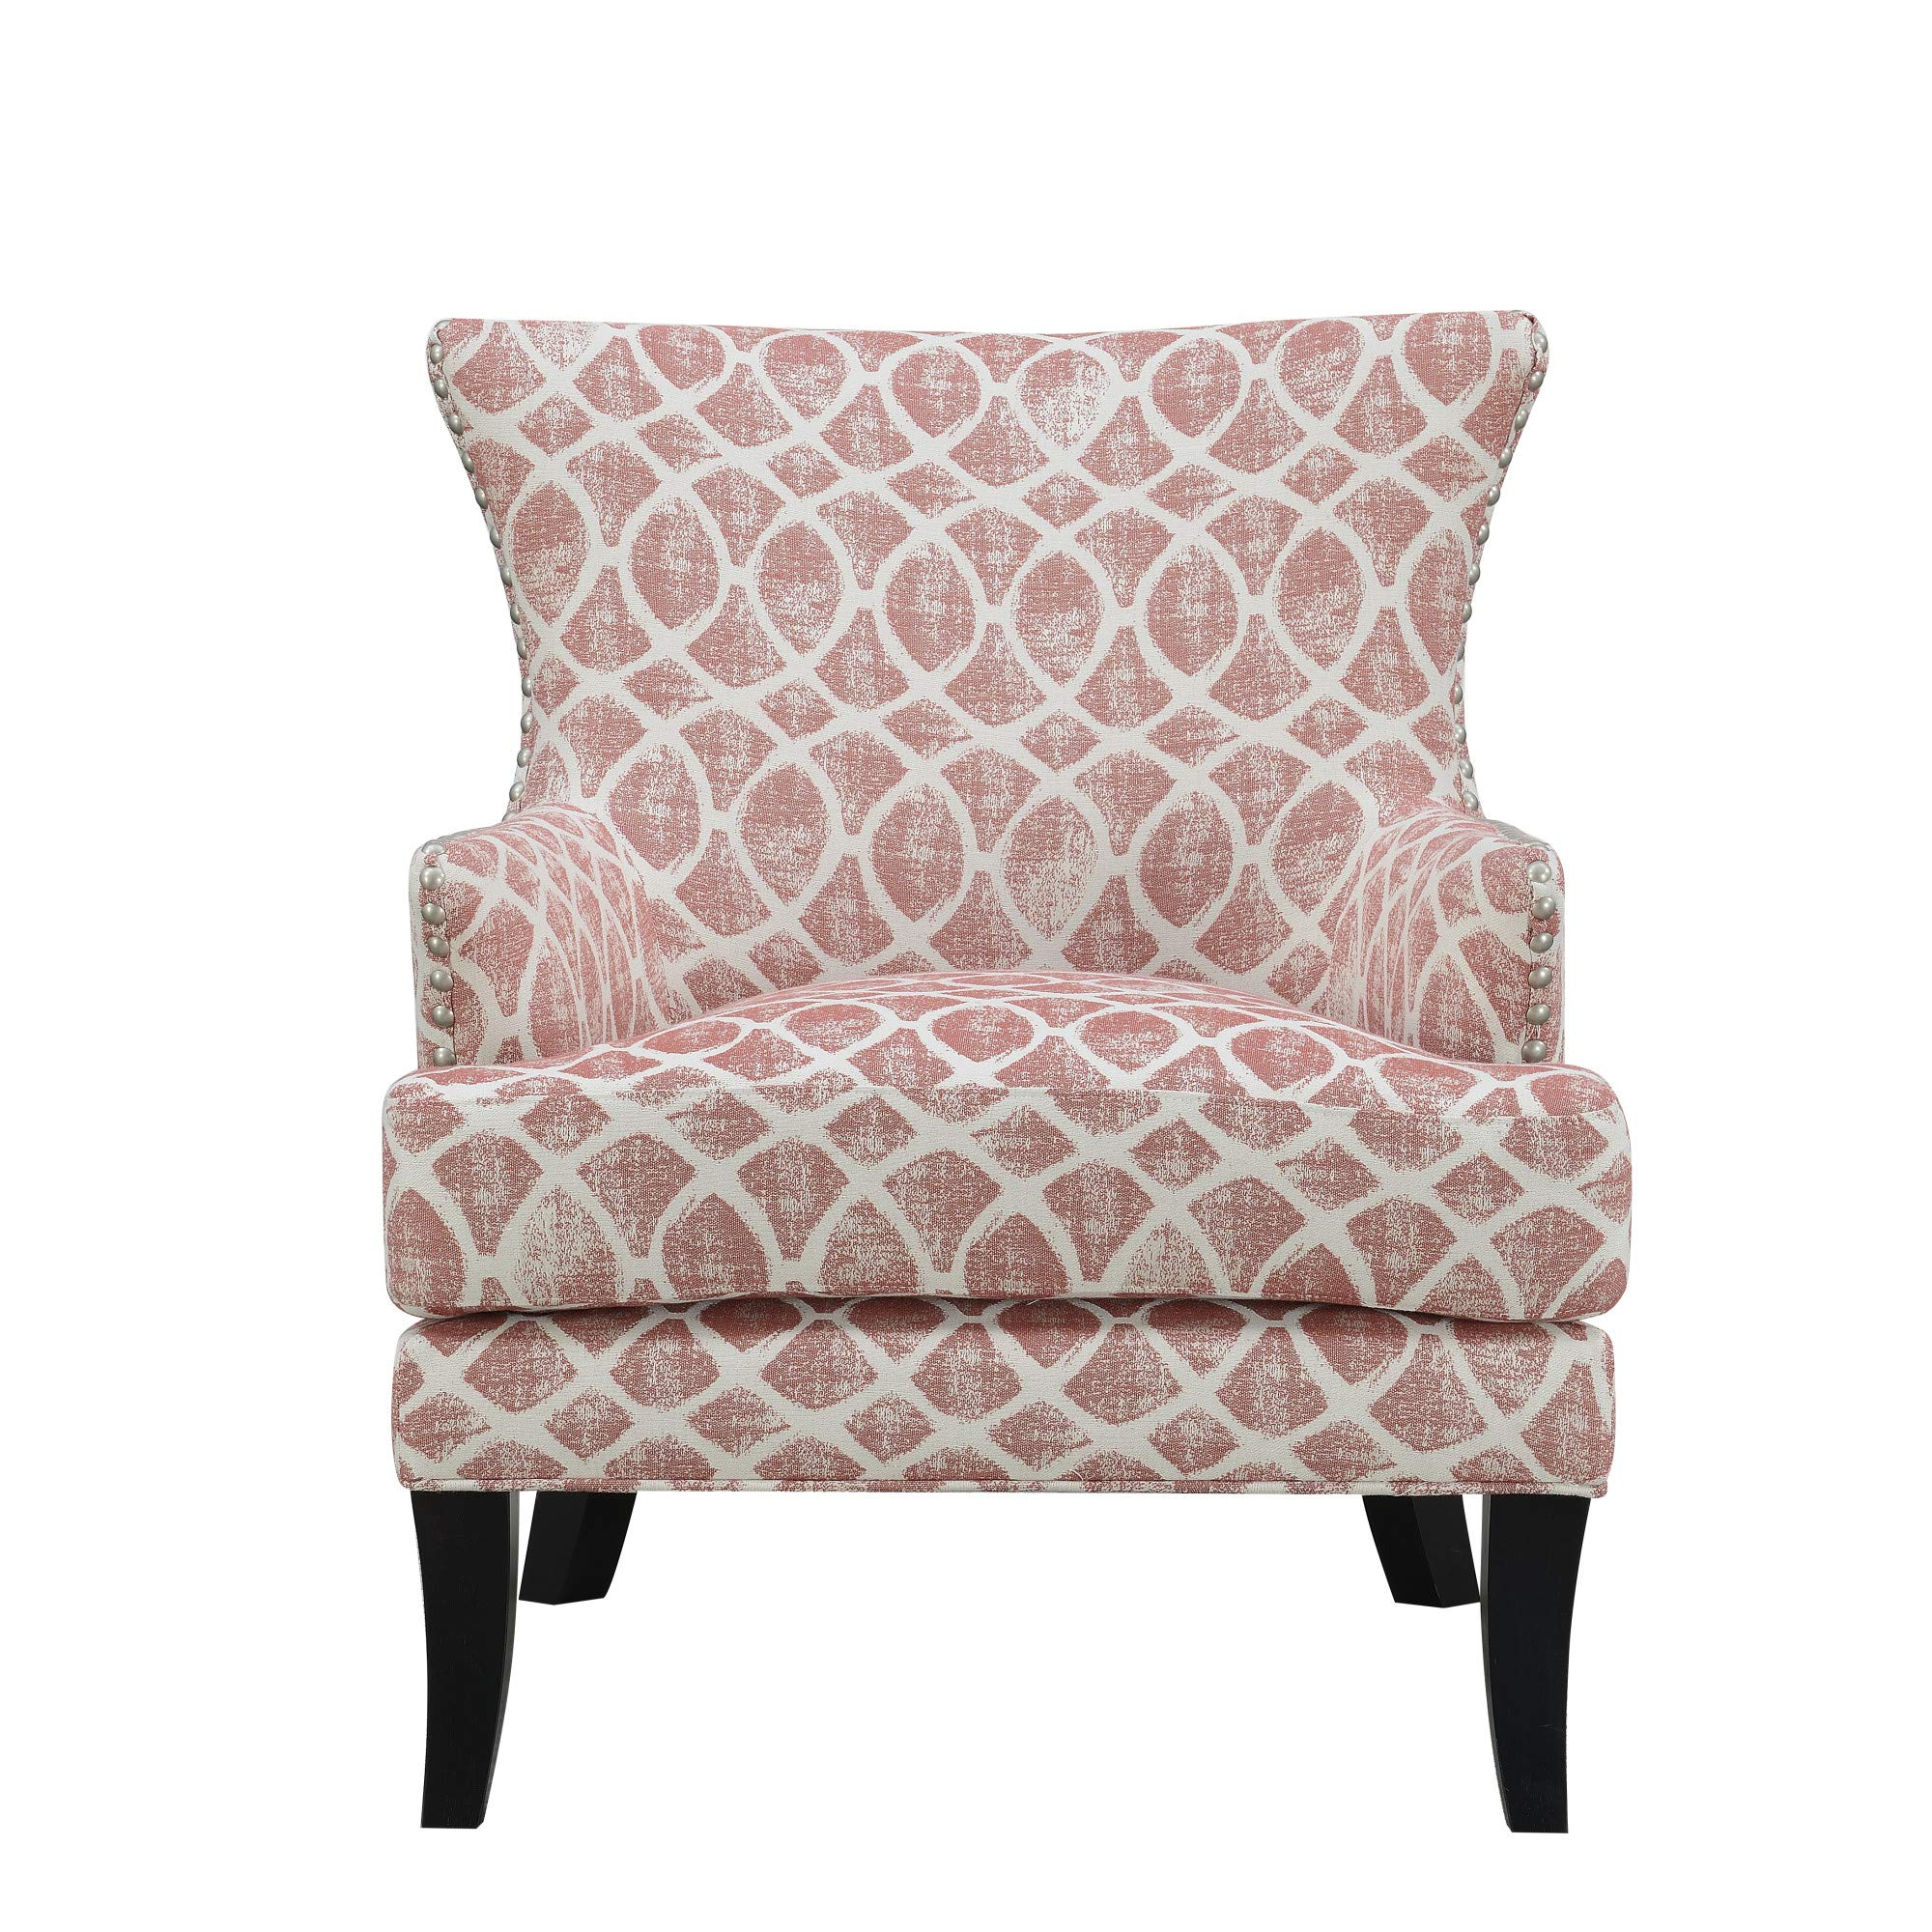 Viv Accent Chair in Pink with Graphic Upholstery And Nailhead Trim, by Artum Hill